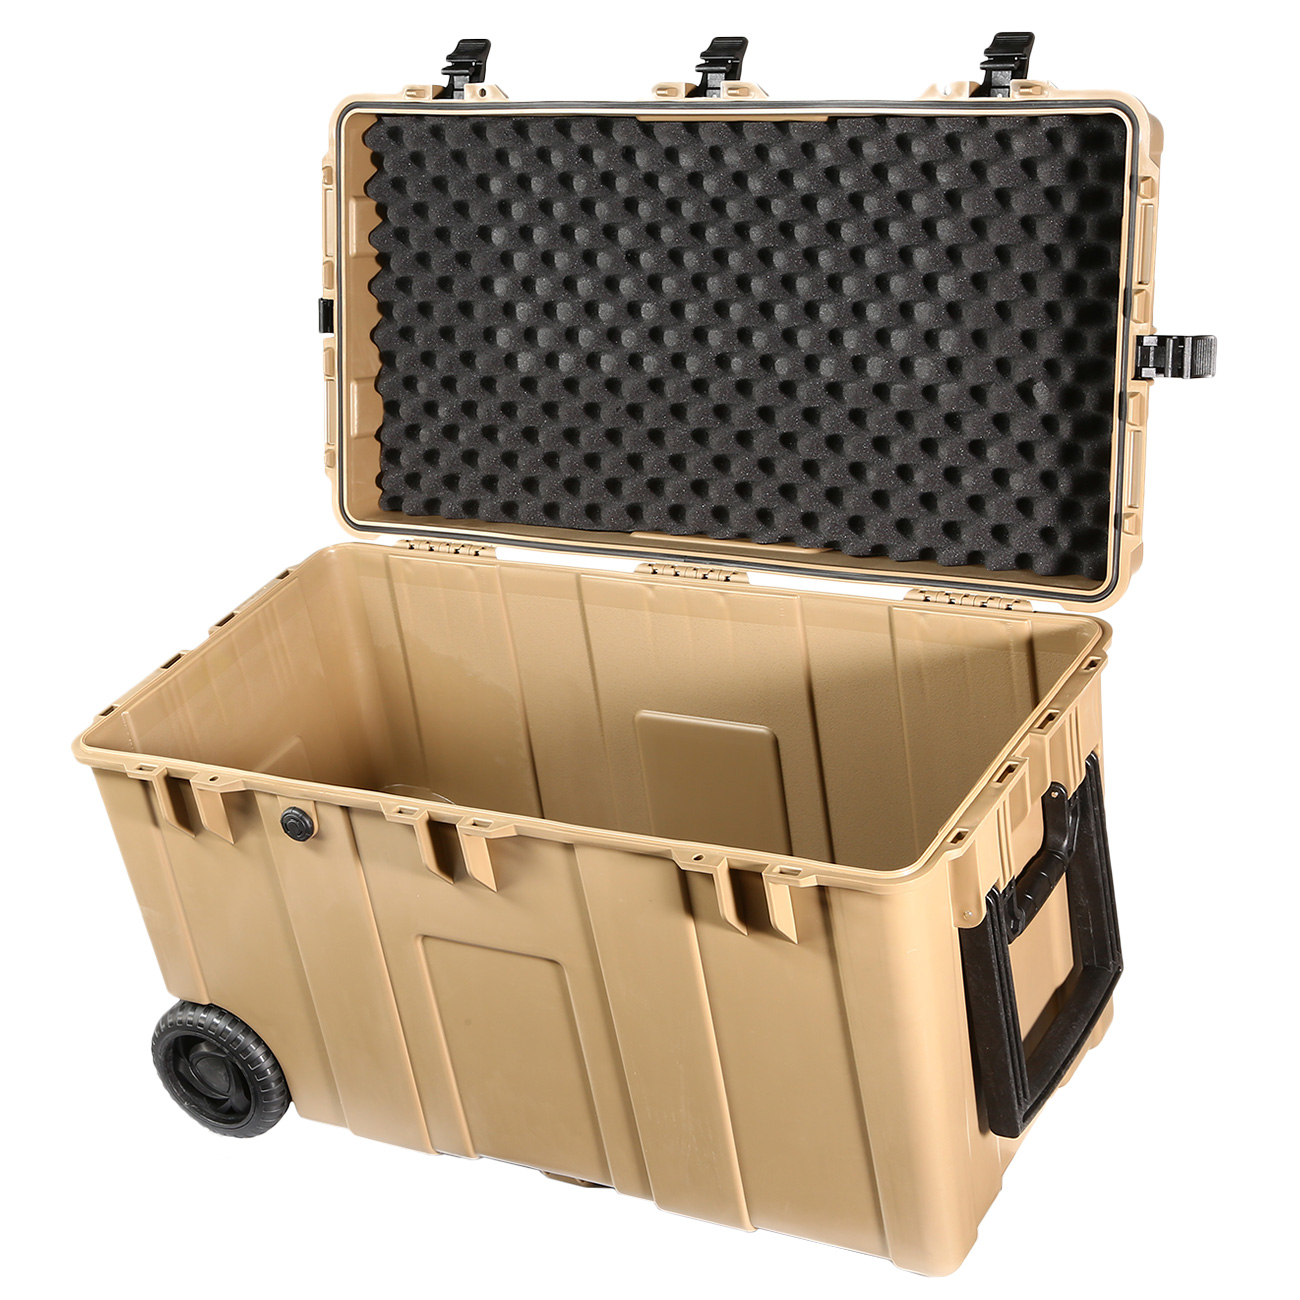 Nuprol Kit Box / Ultimate Hard Case Transport-Trolley 86 x 46 x 53 cm tan 7